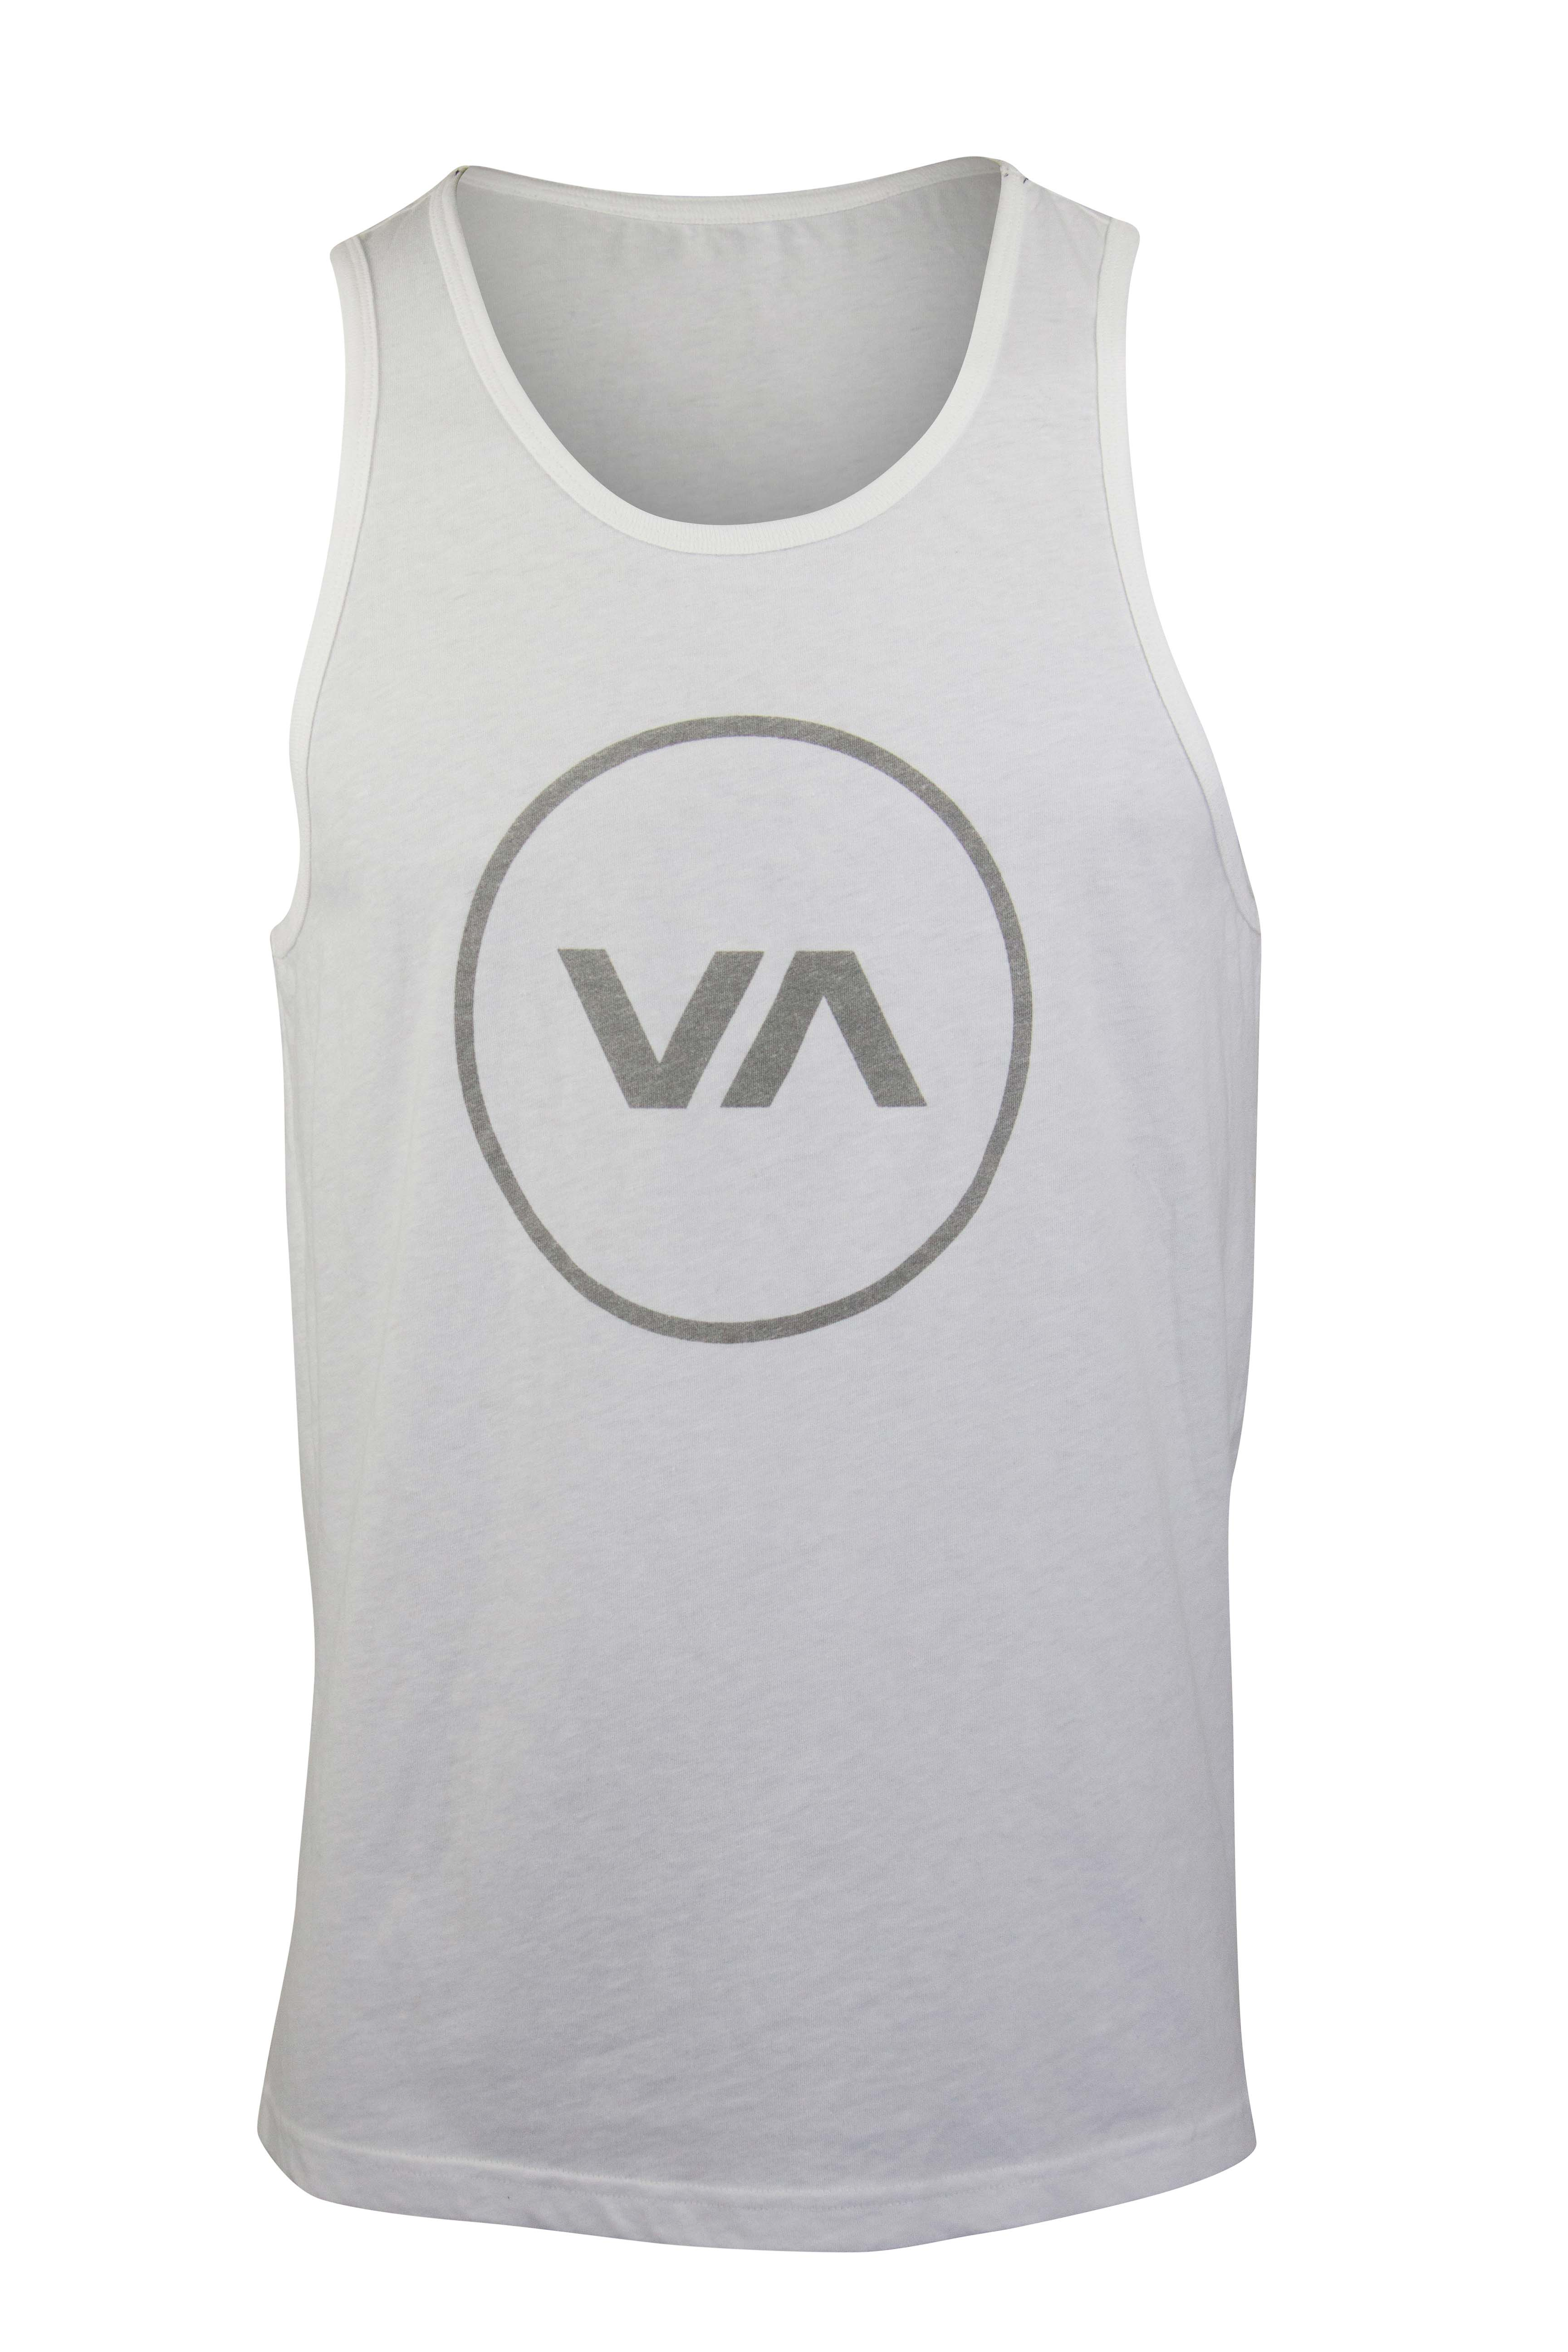 880809030240f0 Details about RVCA Mens VA Sport Position Tank Top Shirt - White/Gray